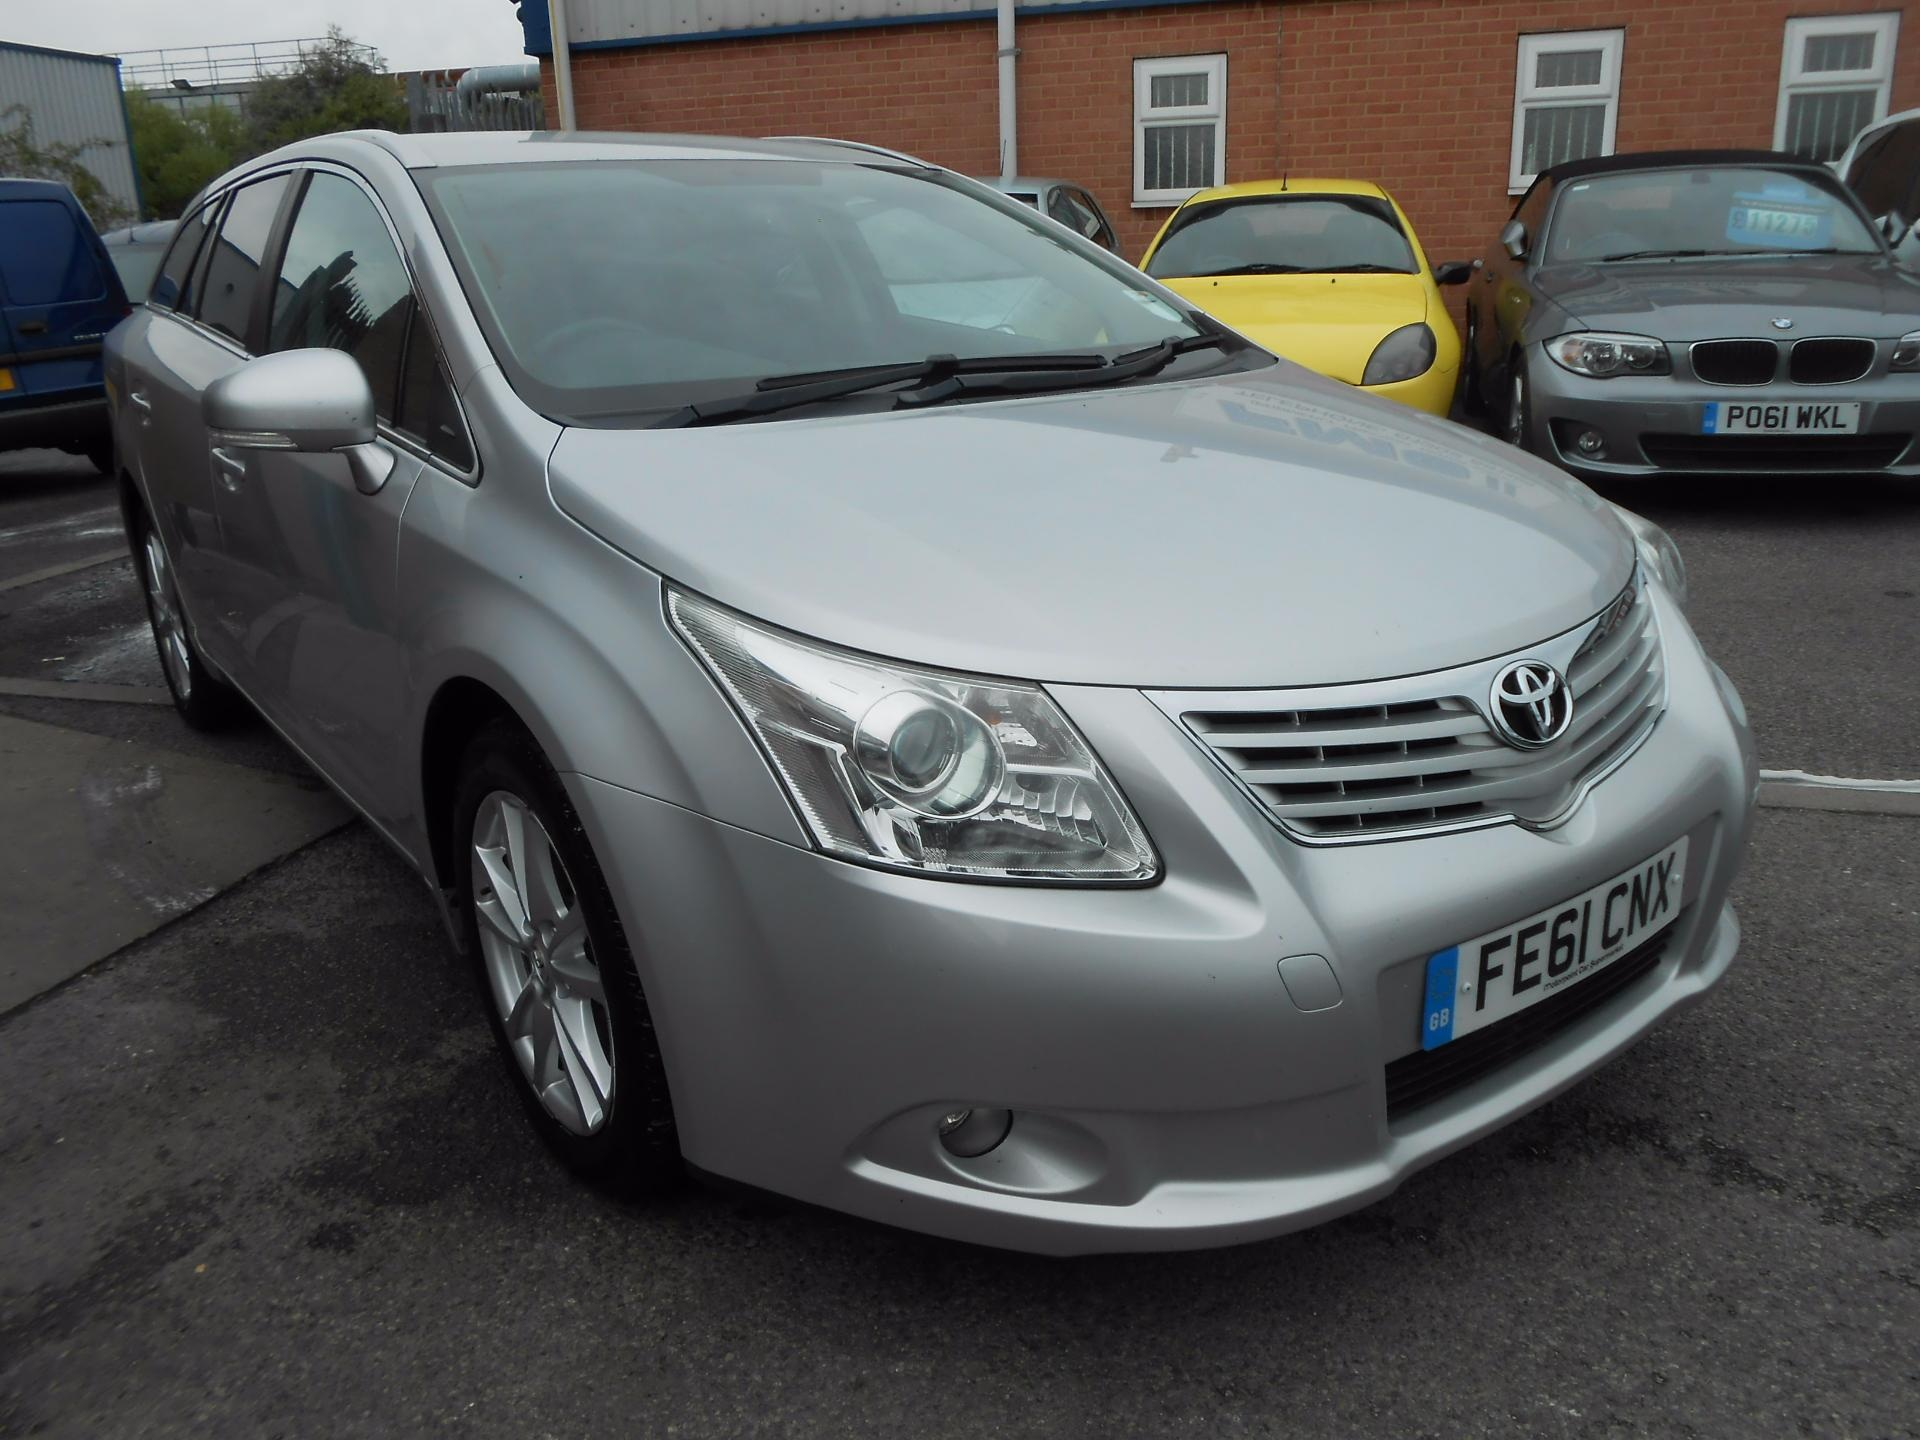 used toyota cars for sale in york north yorkshire motors · image